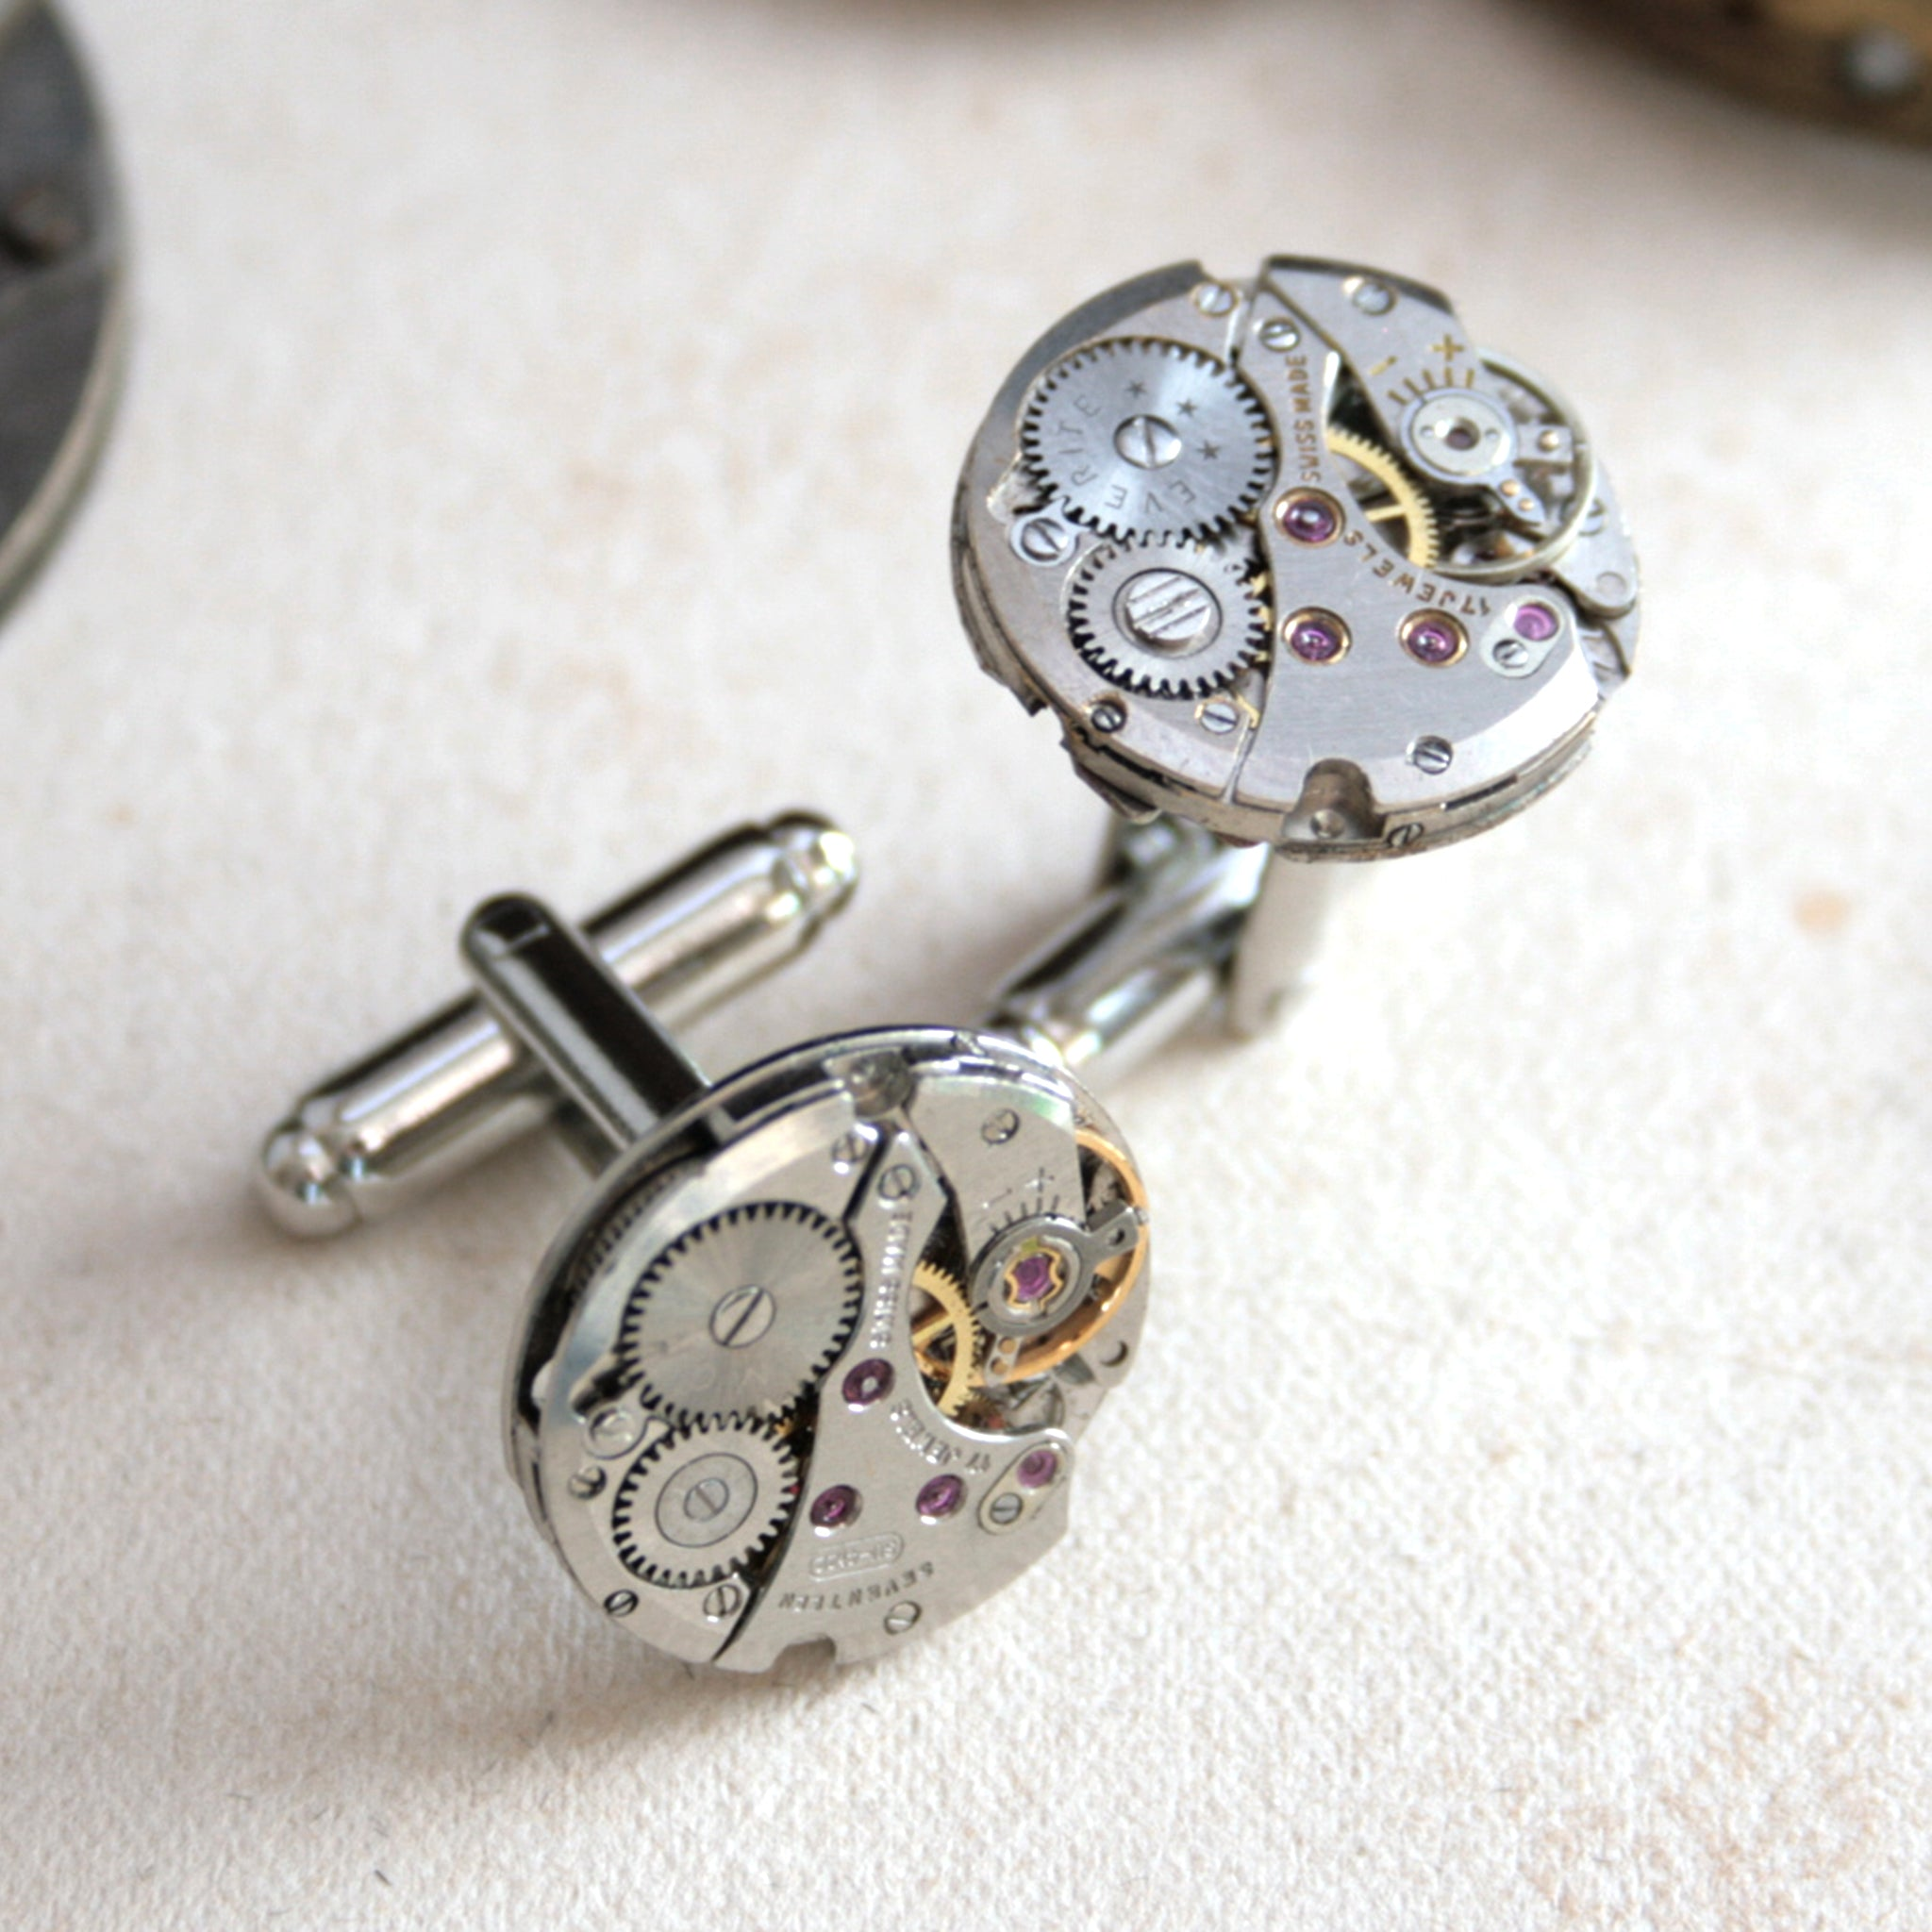 Steampunk mens cufflinks featuring antique watch movements